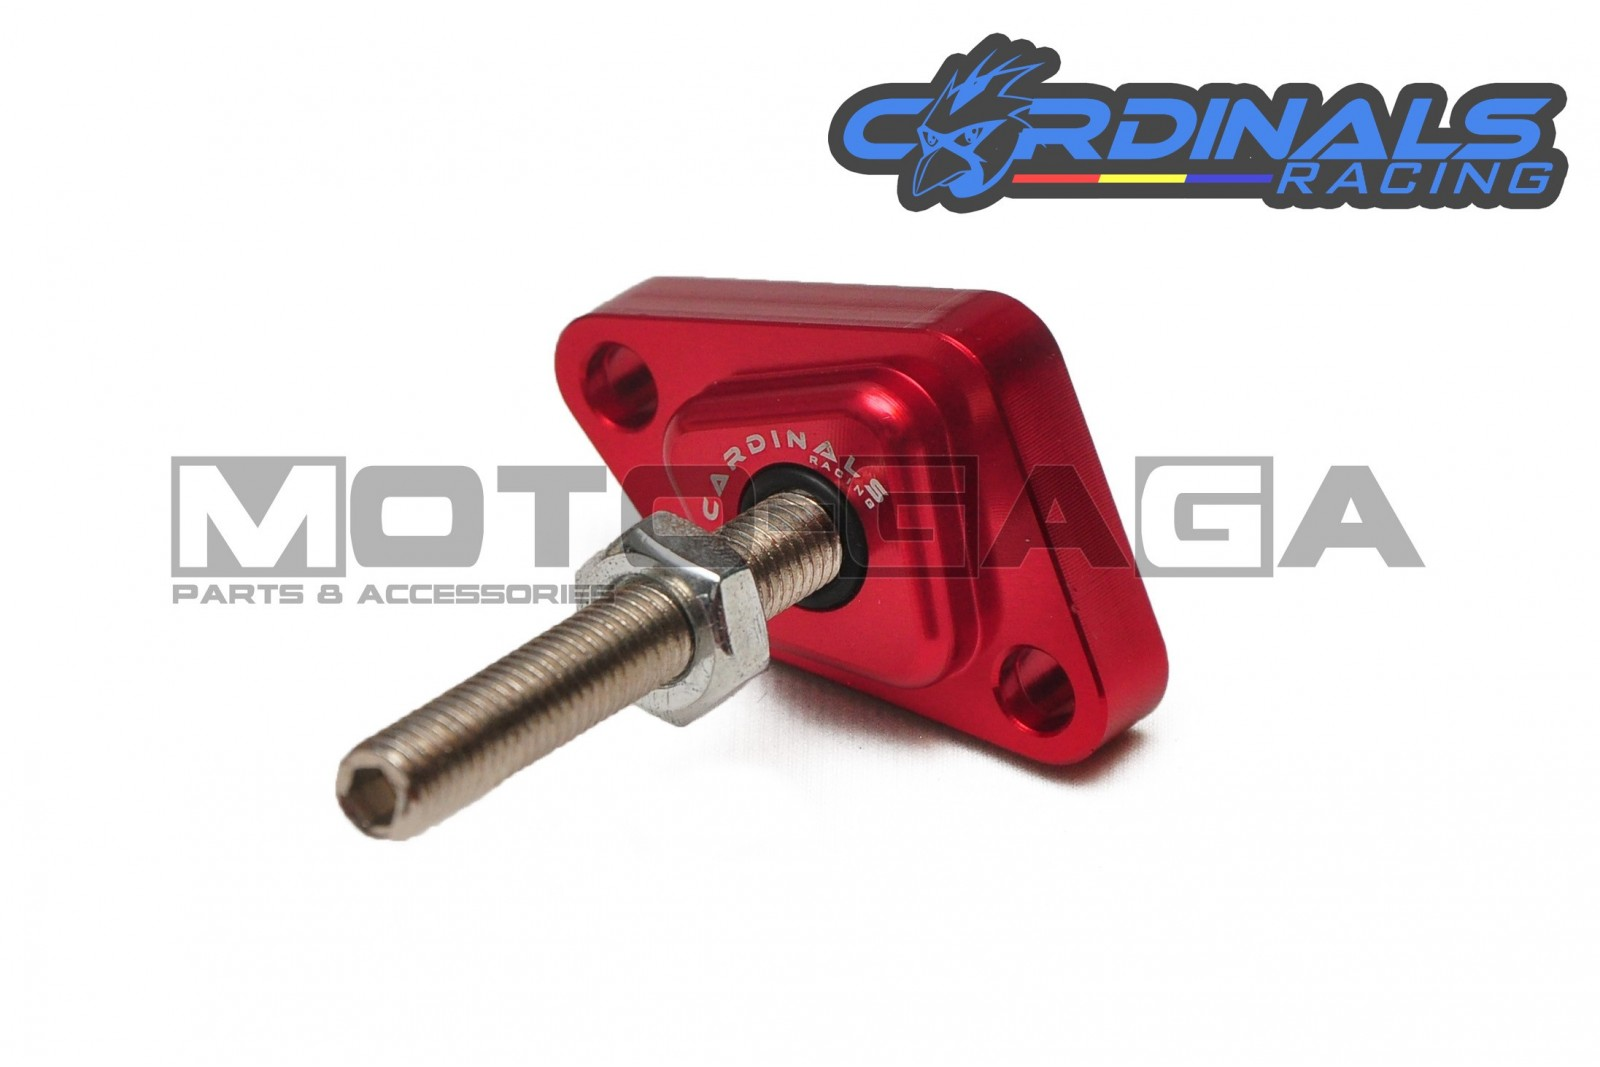 Cardinals Racing Manual Timing Chain Tensioner - Yamaha LC135/Jupiter  MX/Crypton X/Spark/Exciter/sniper/T135/ Fz150i Vixion Color Red